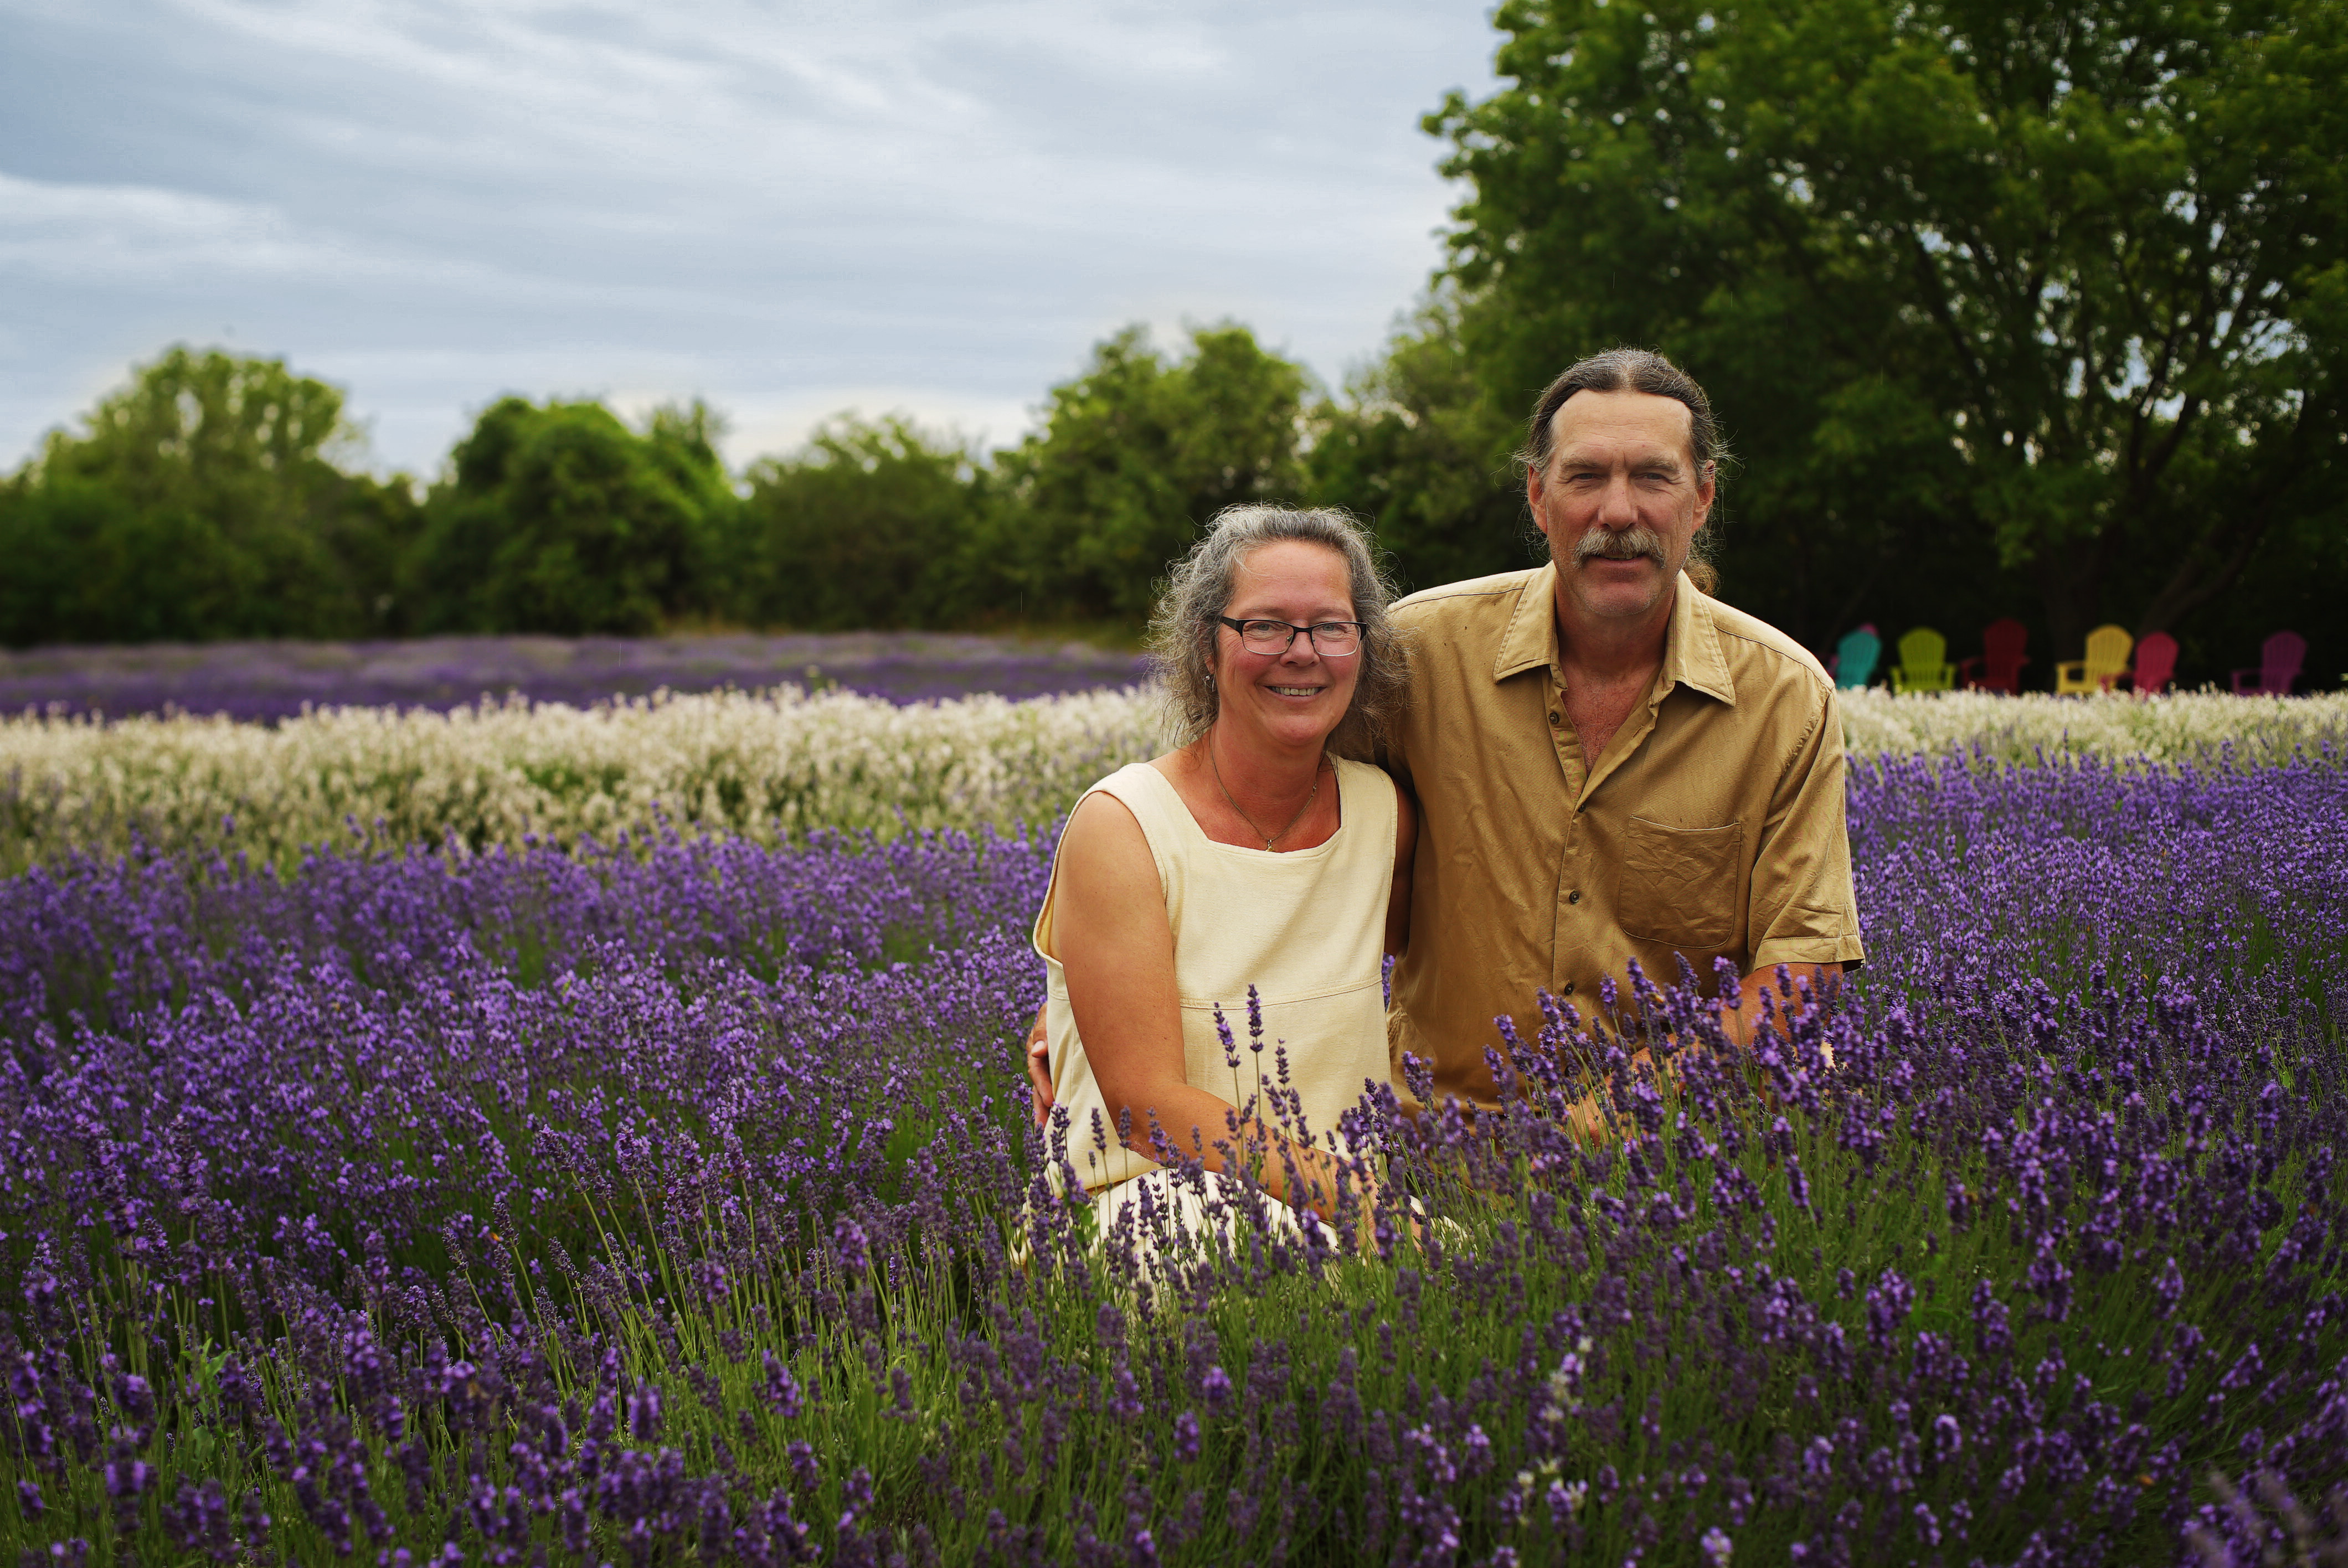 Prince Edward County Lavender Farm - Build a New Life